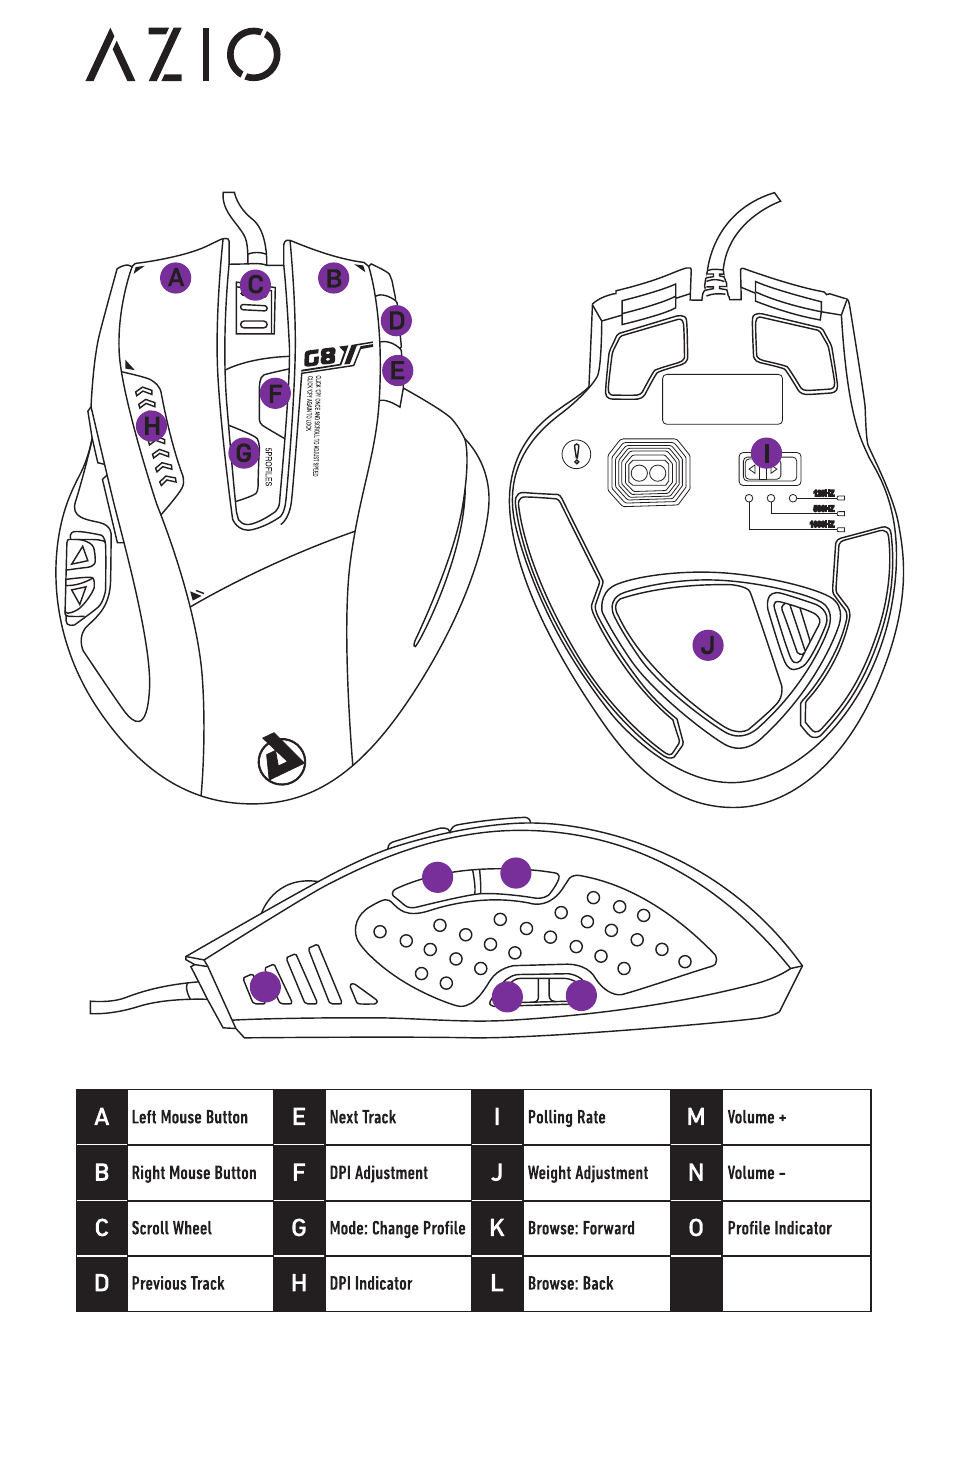 Azio G8 Laser Gaming Class Mouse (GM8200) User Manual